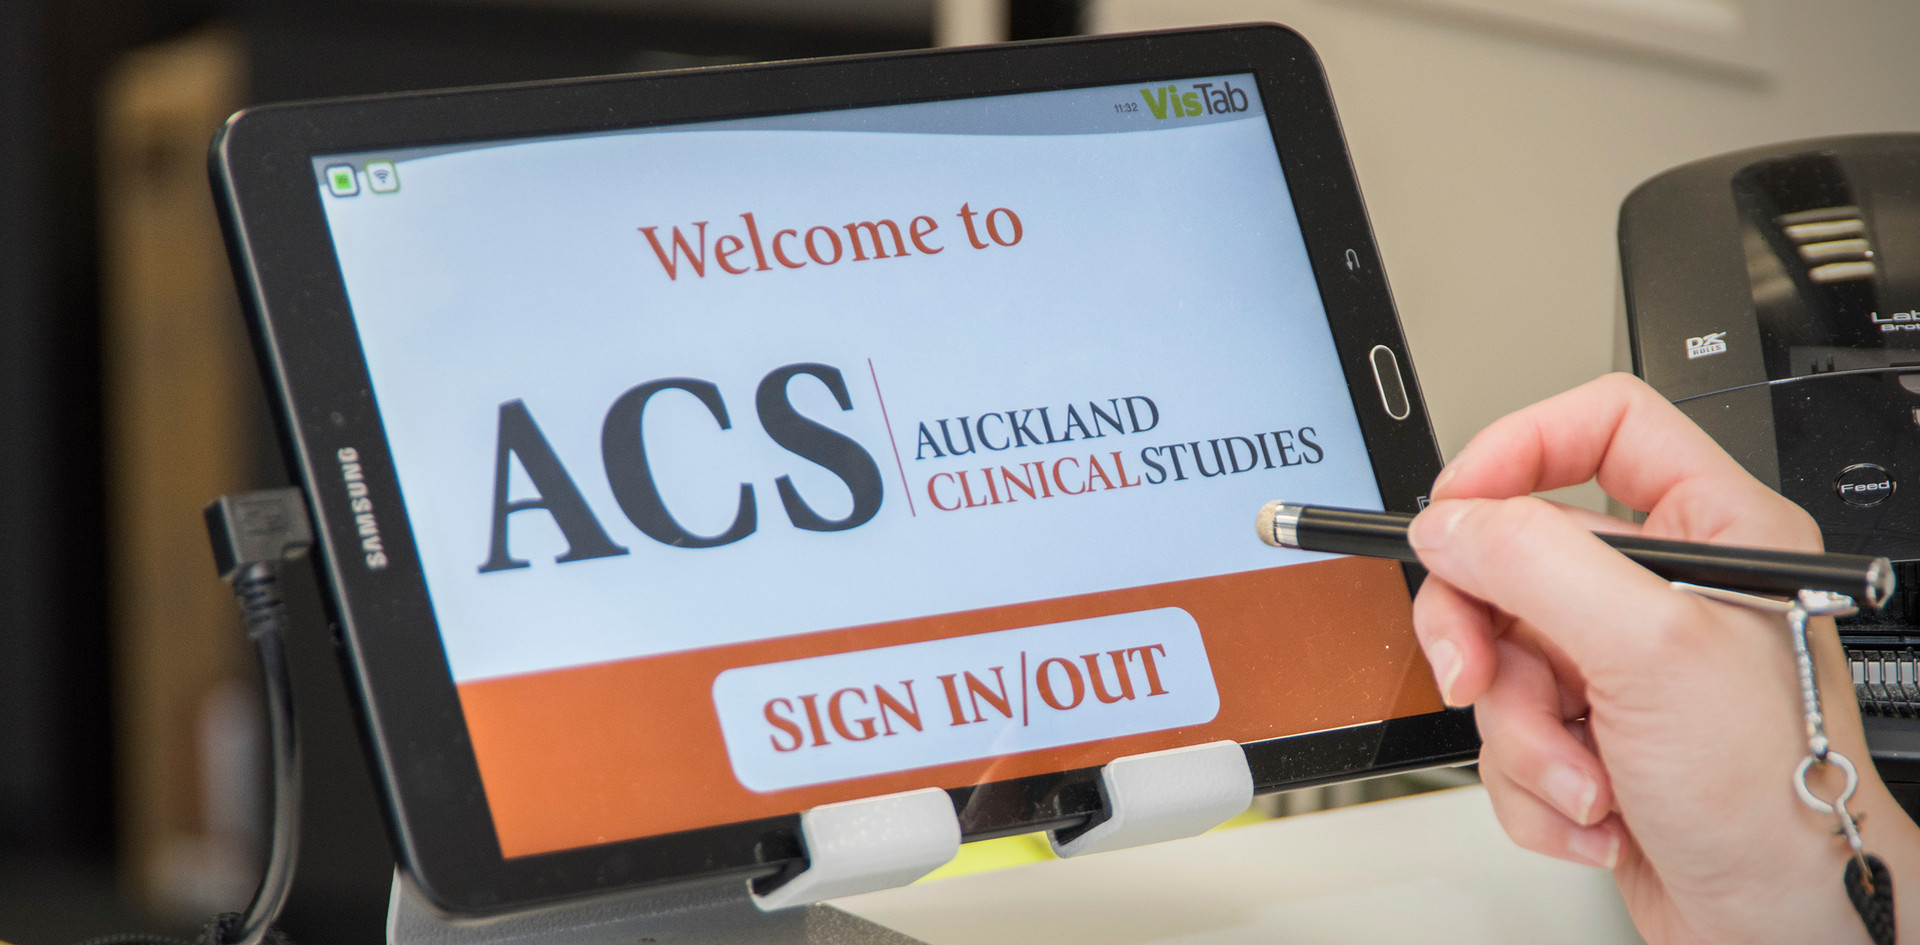 Auckland Clinical Studies Sign In